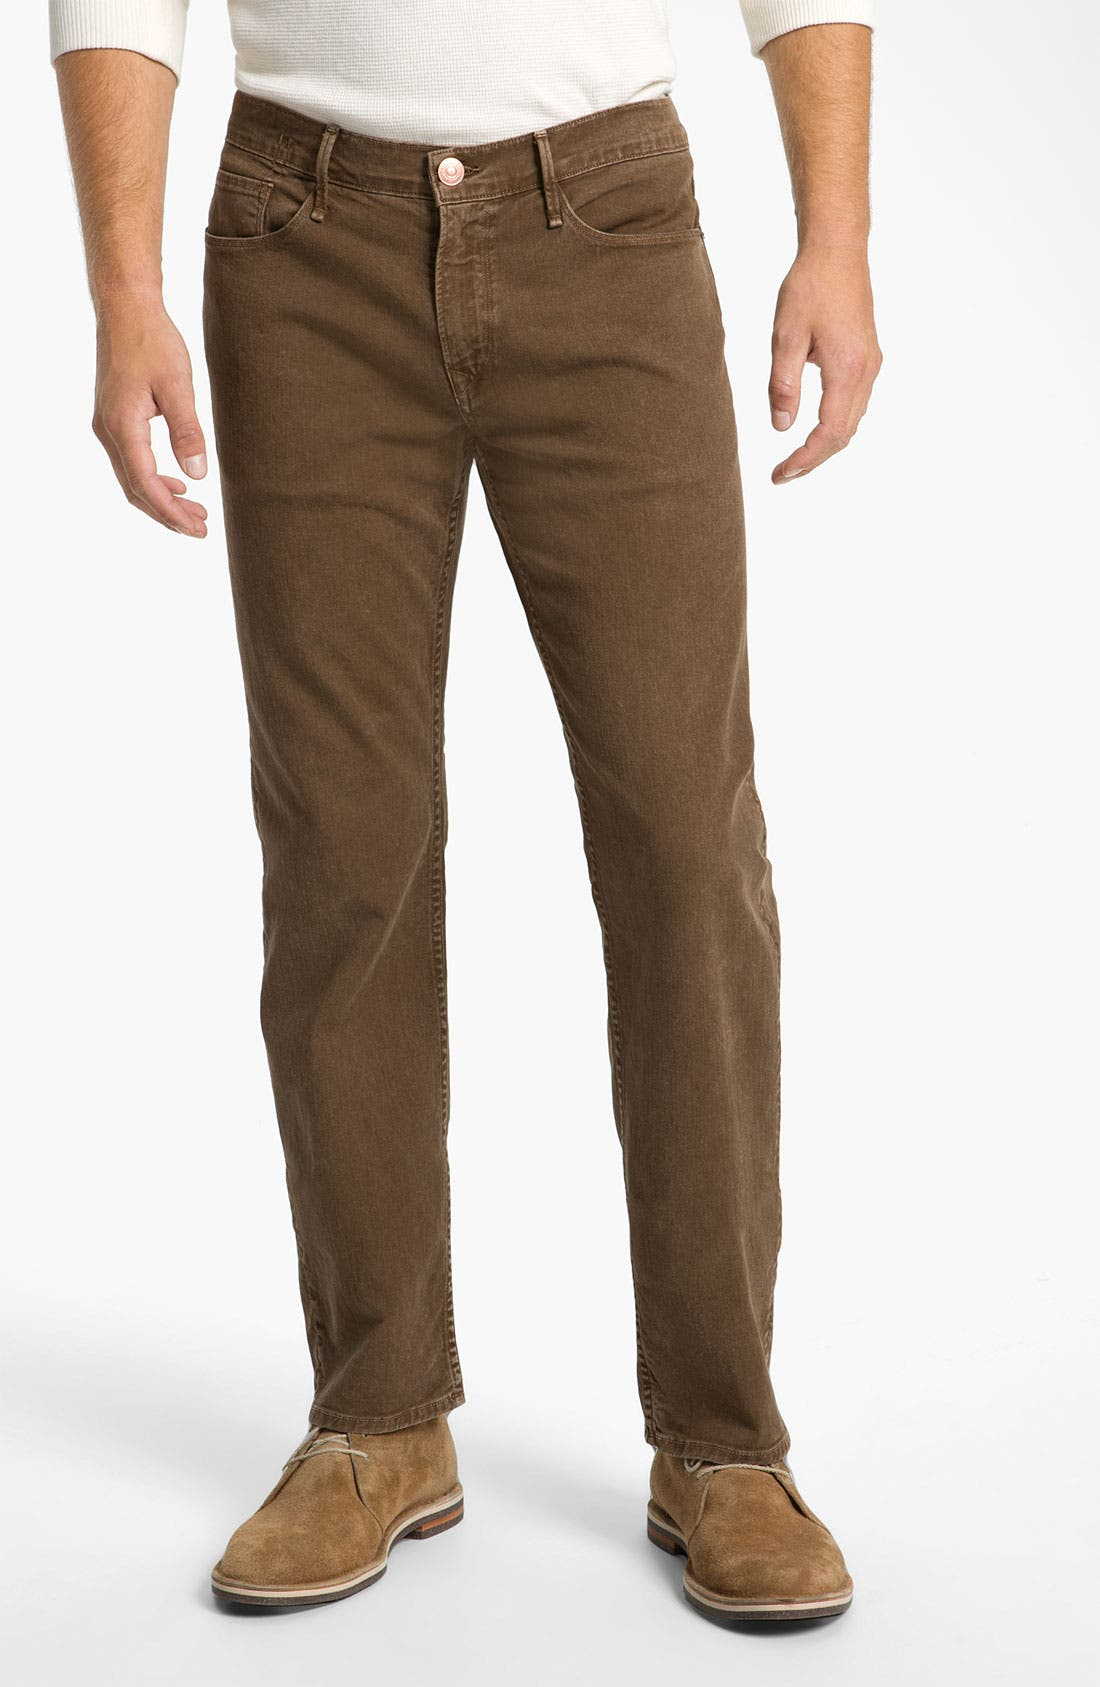 Main Image - Earnest Sewn 'Fulton' Straight Leg Twill Pants